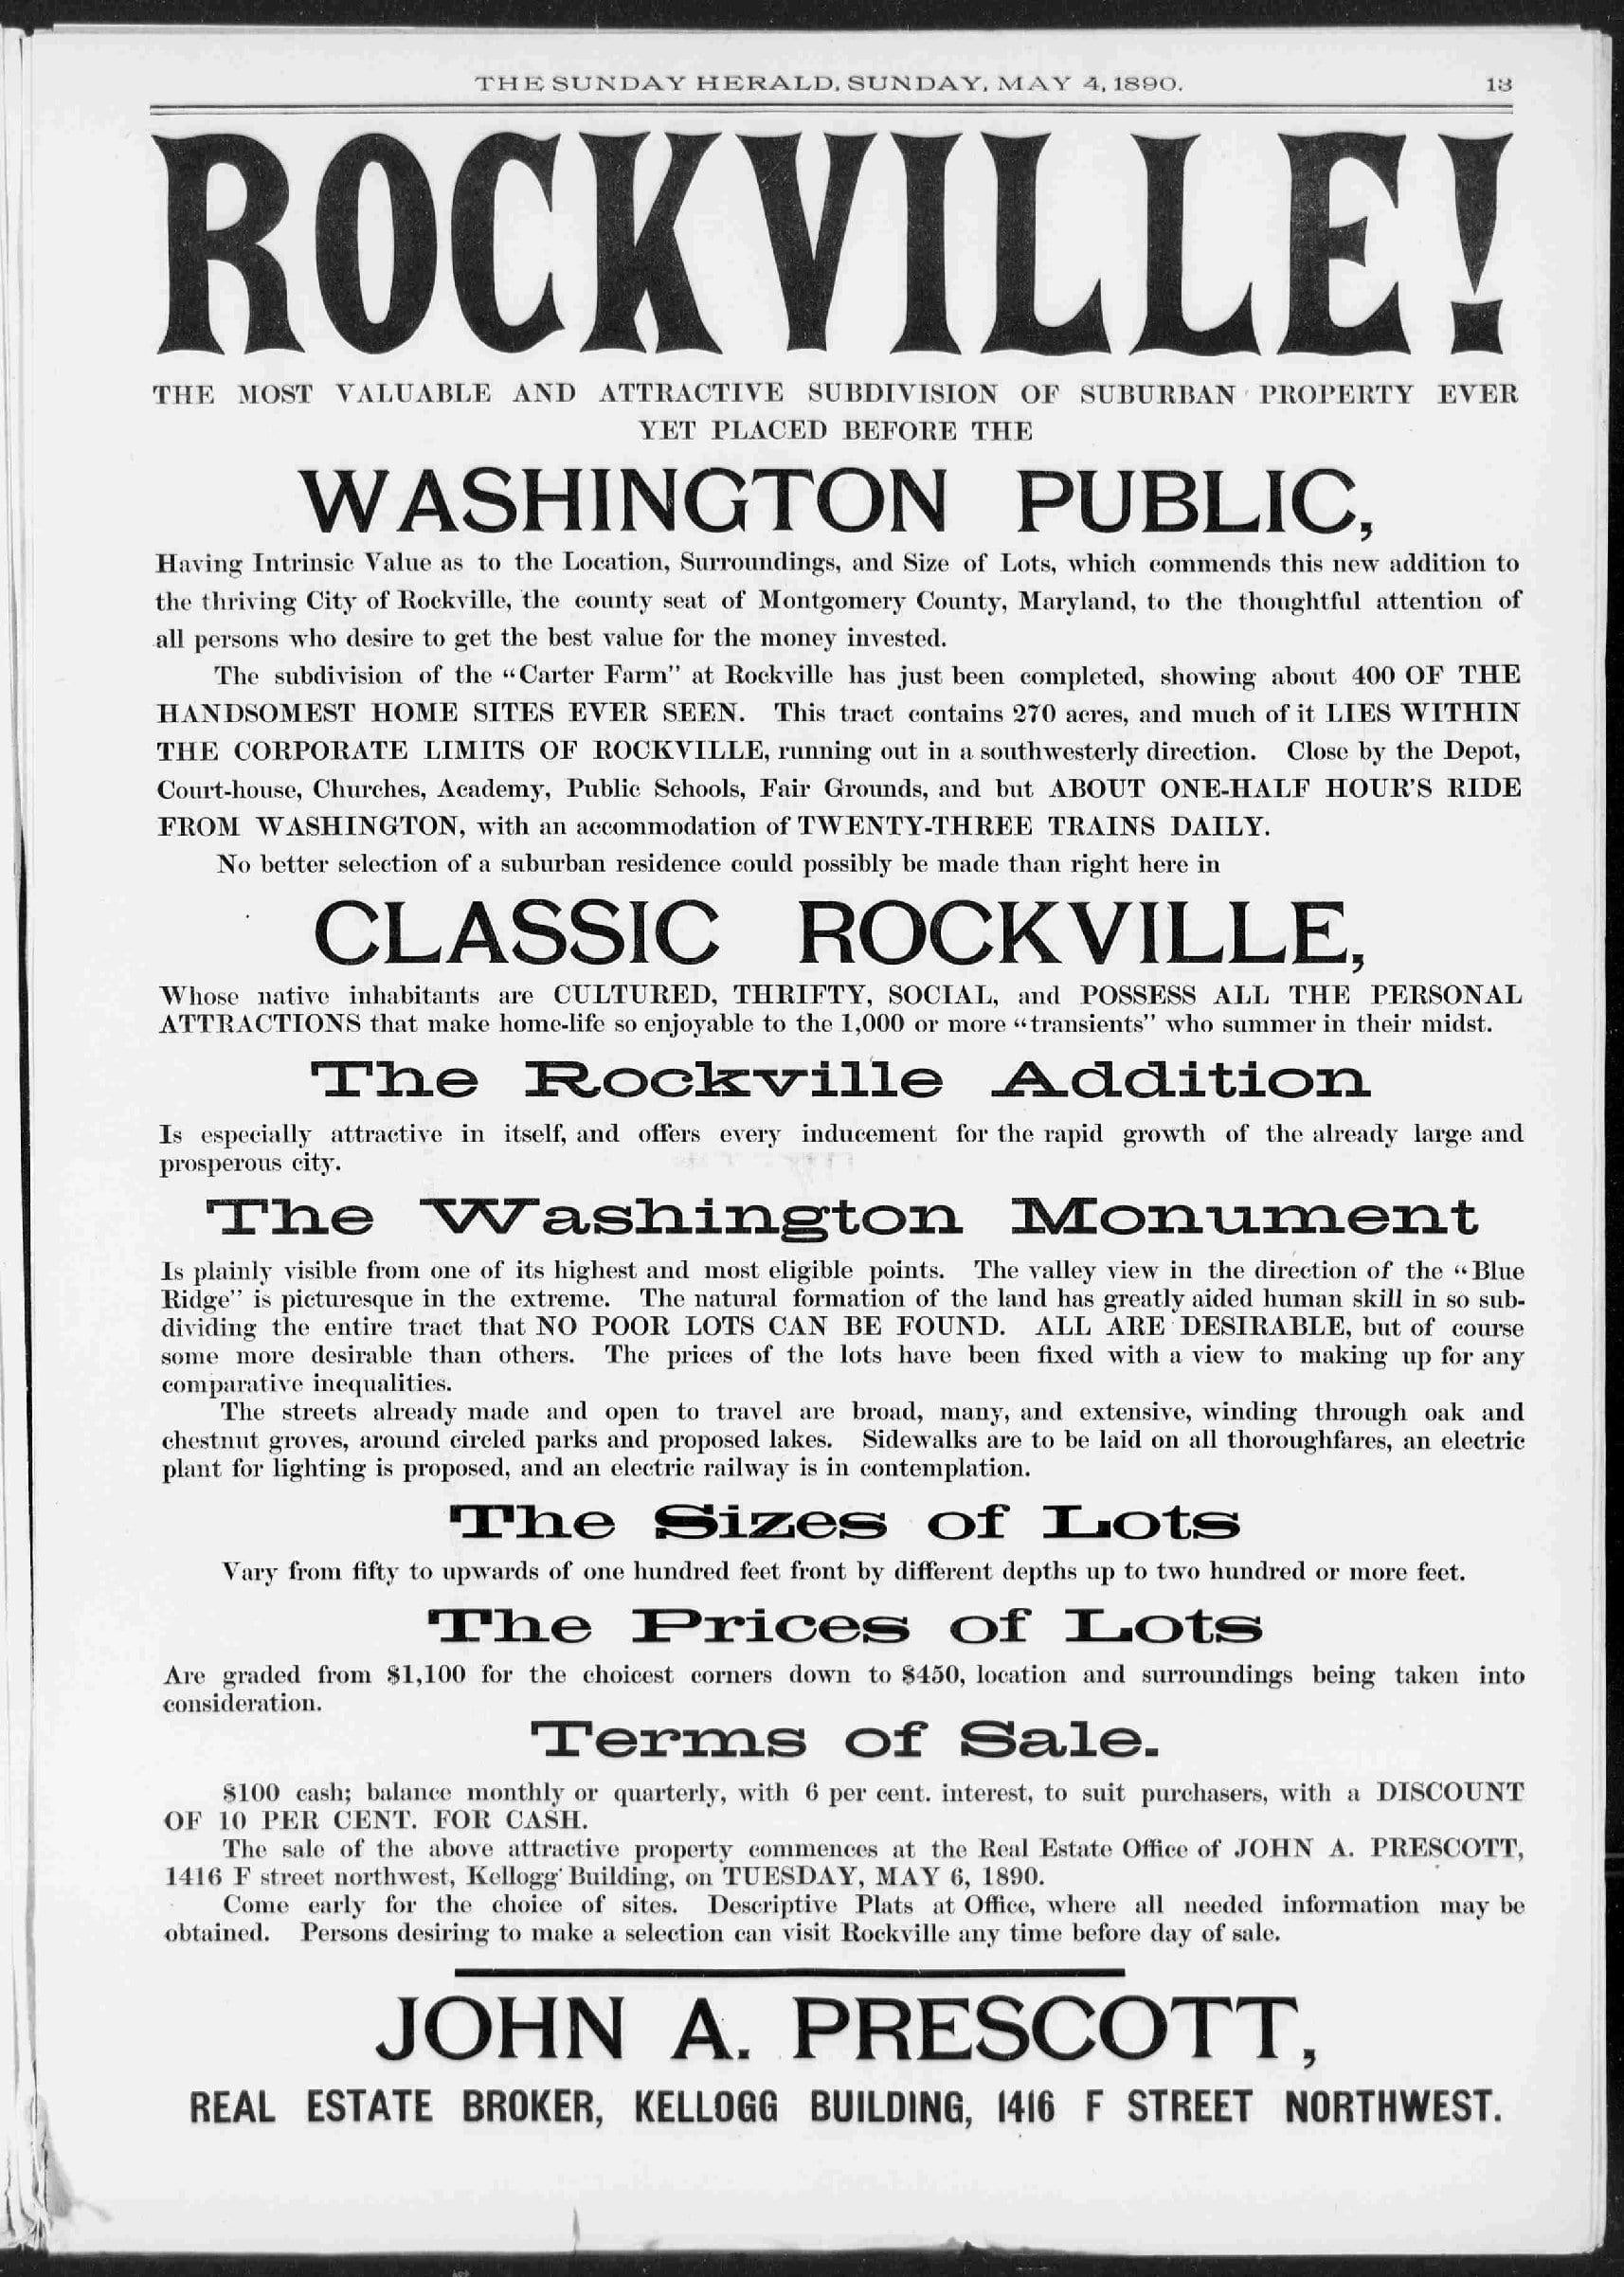 Rockville! advertisement in The Sunday Herald - May 4th, 1890